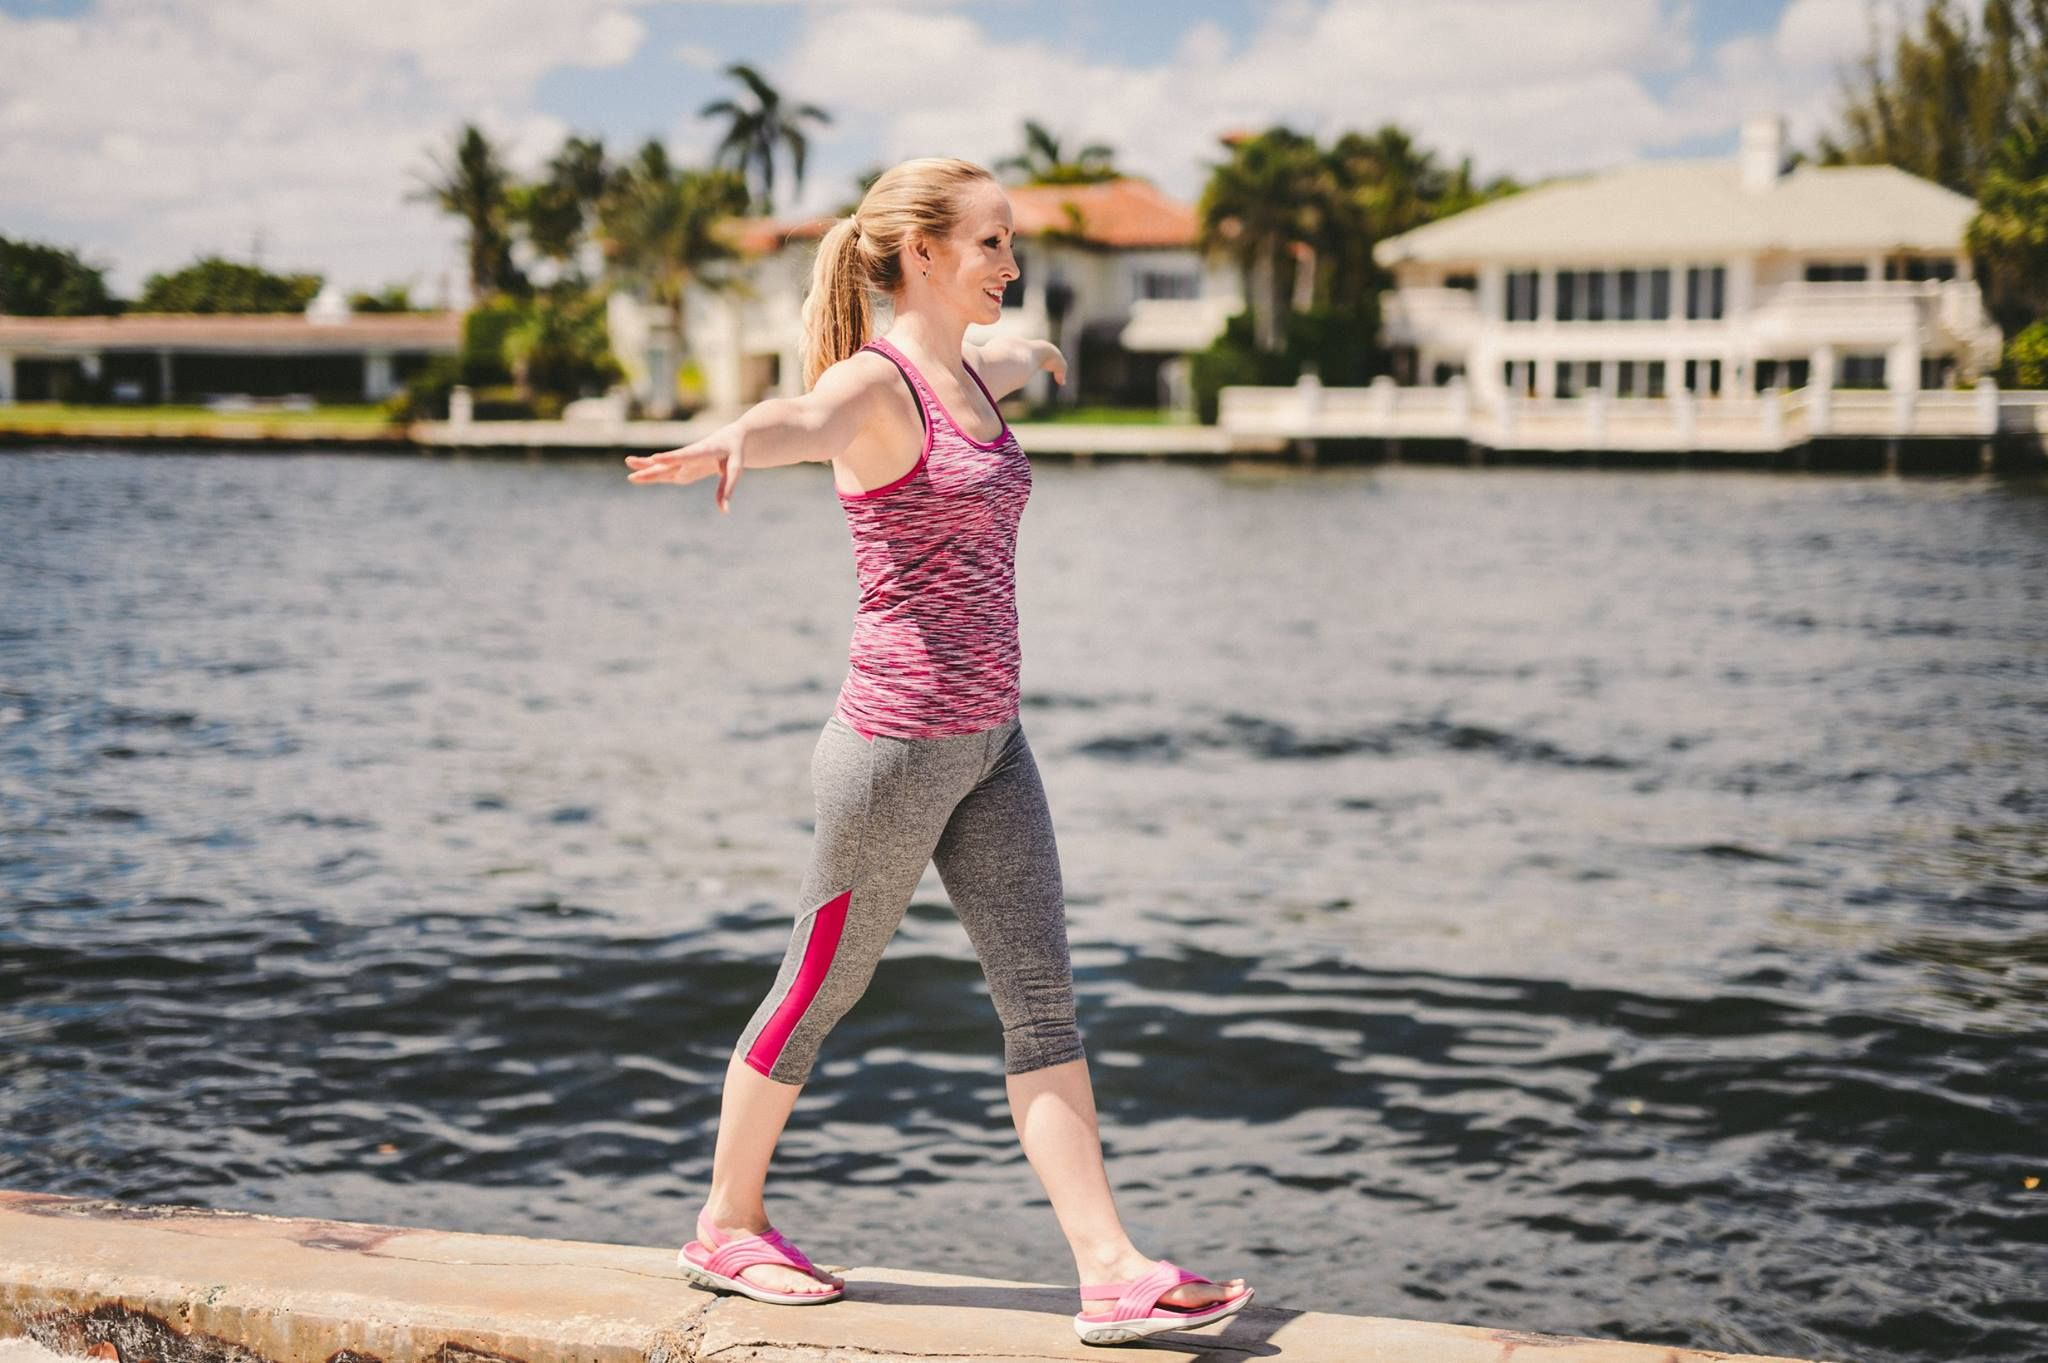 Get outside today! How do you stay active during the summer? Stay cool with the Summer Slingback Sport Sandal.